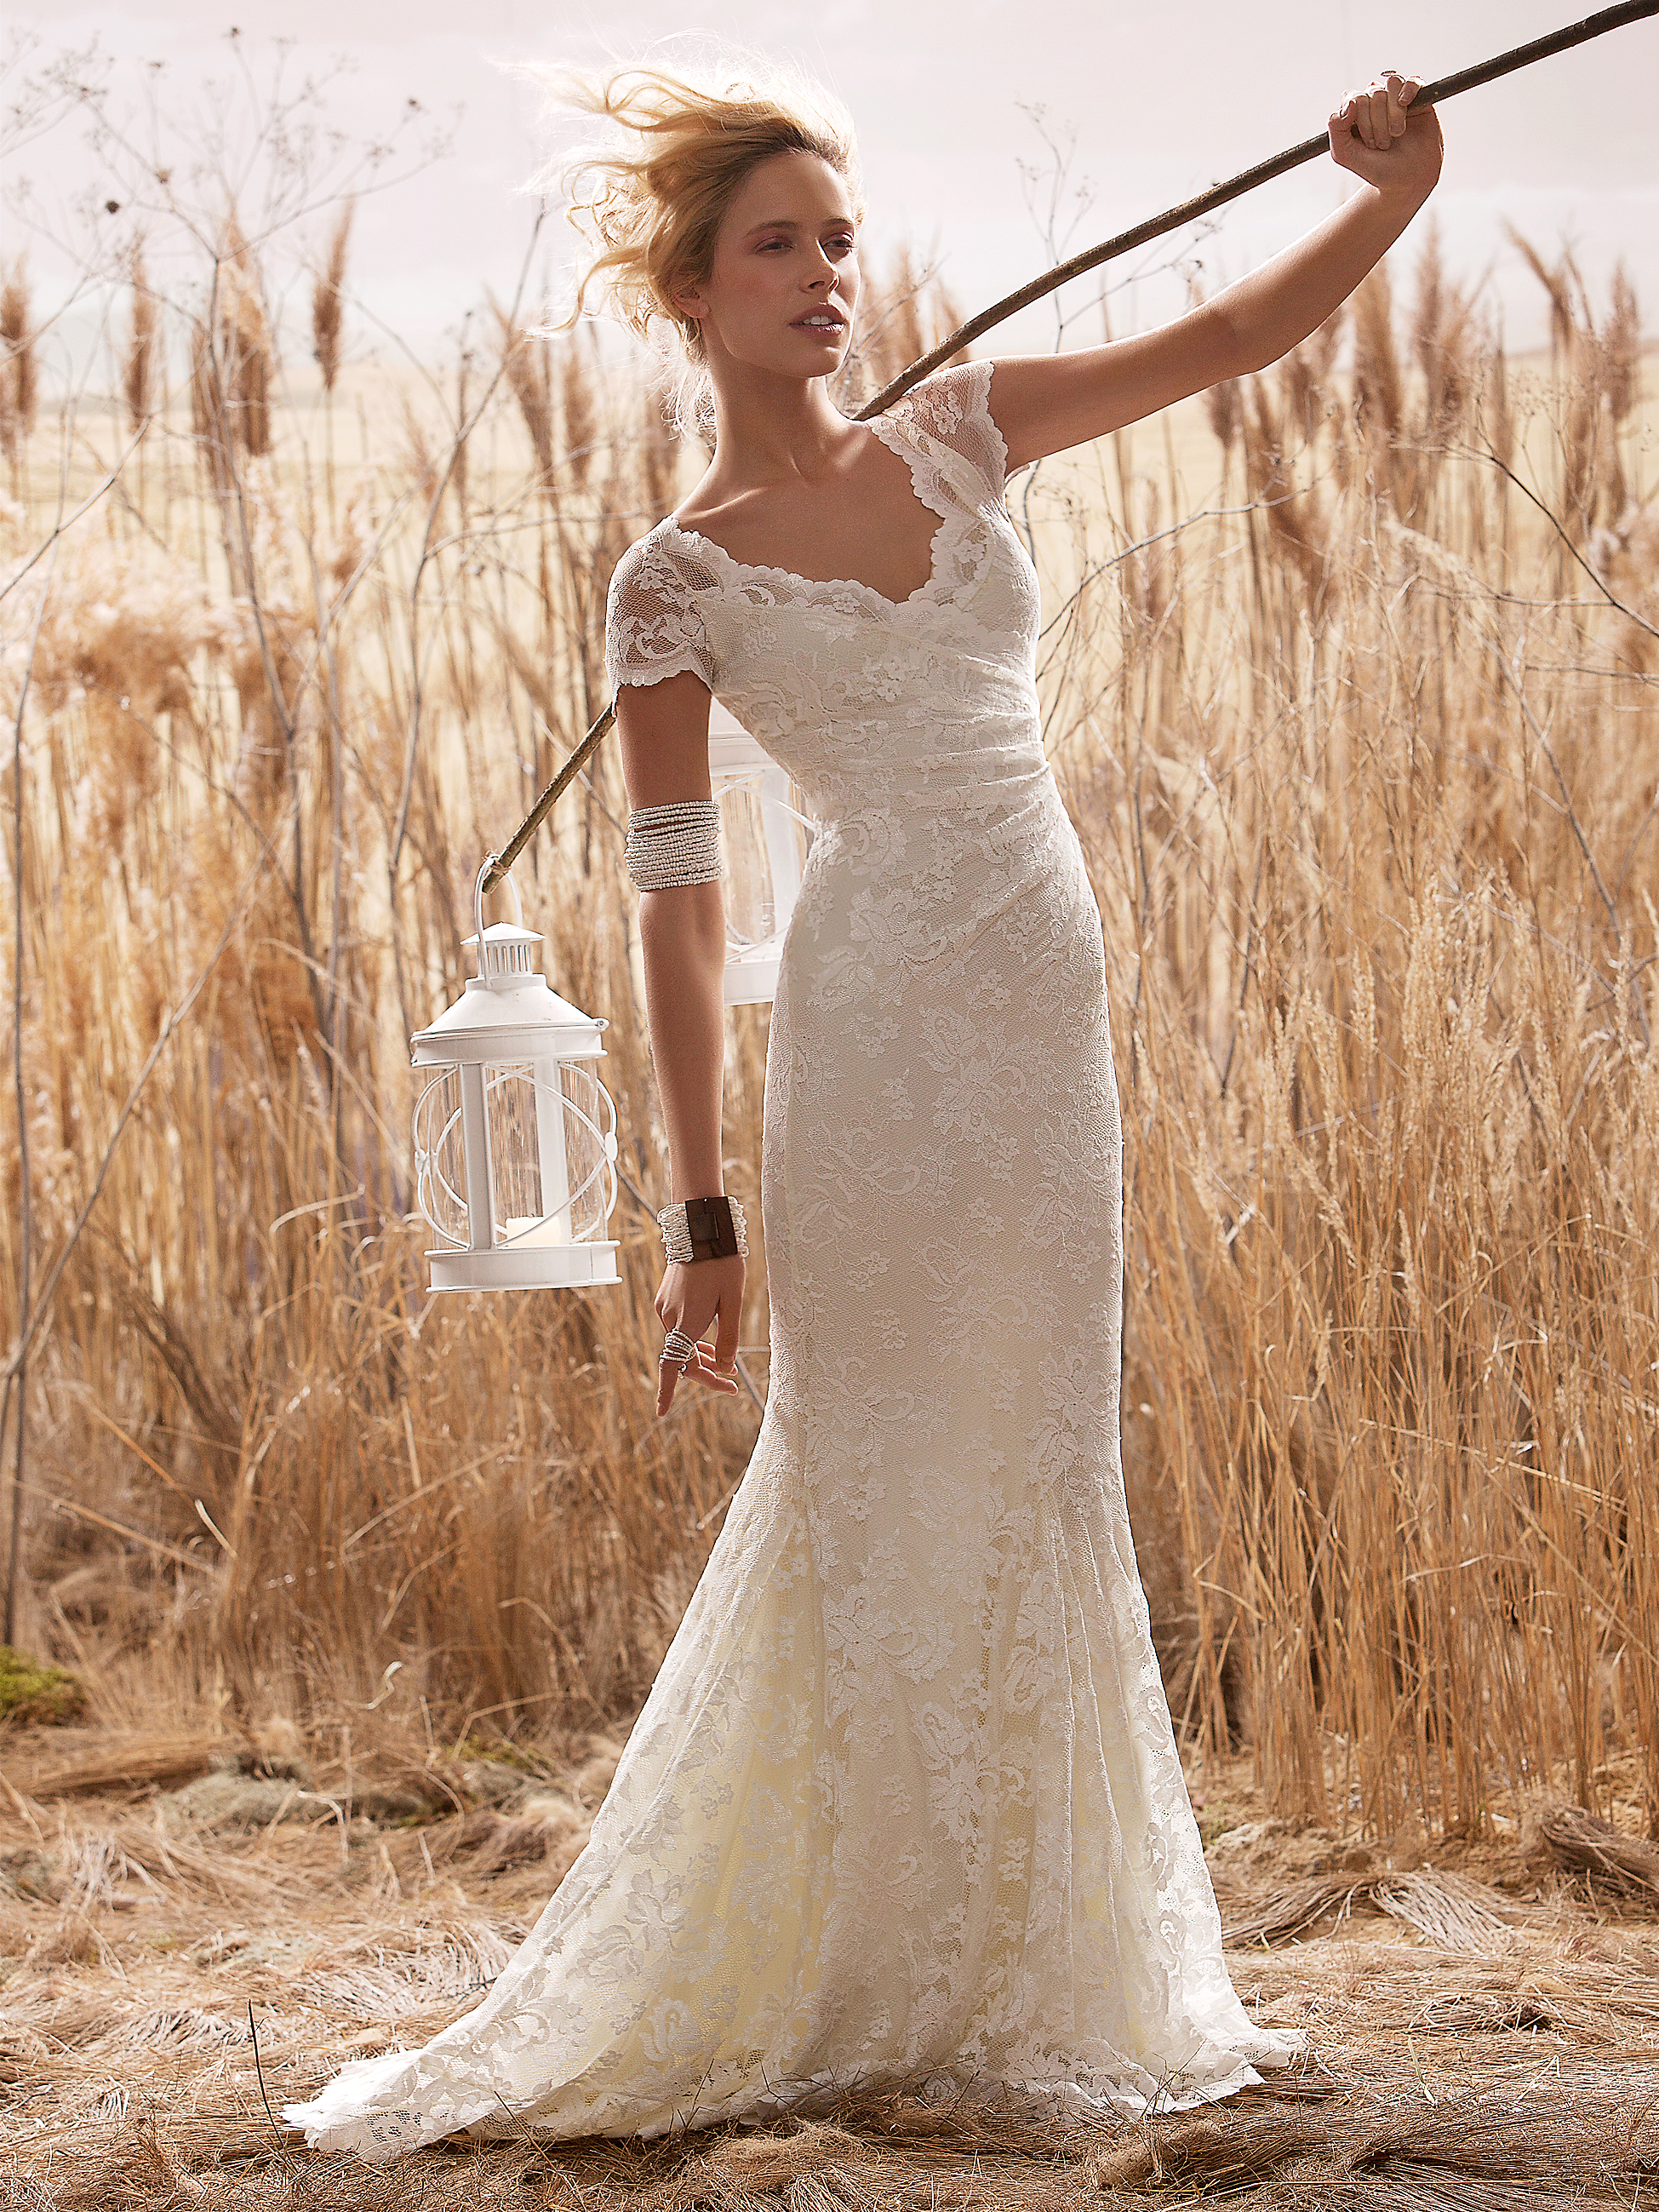 Wedding gowns from olvi 39 s rustic wedding chic for Wedding dresses for outdoor country wedding